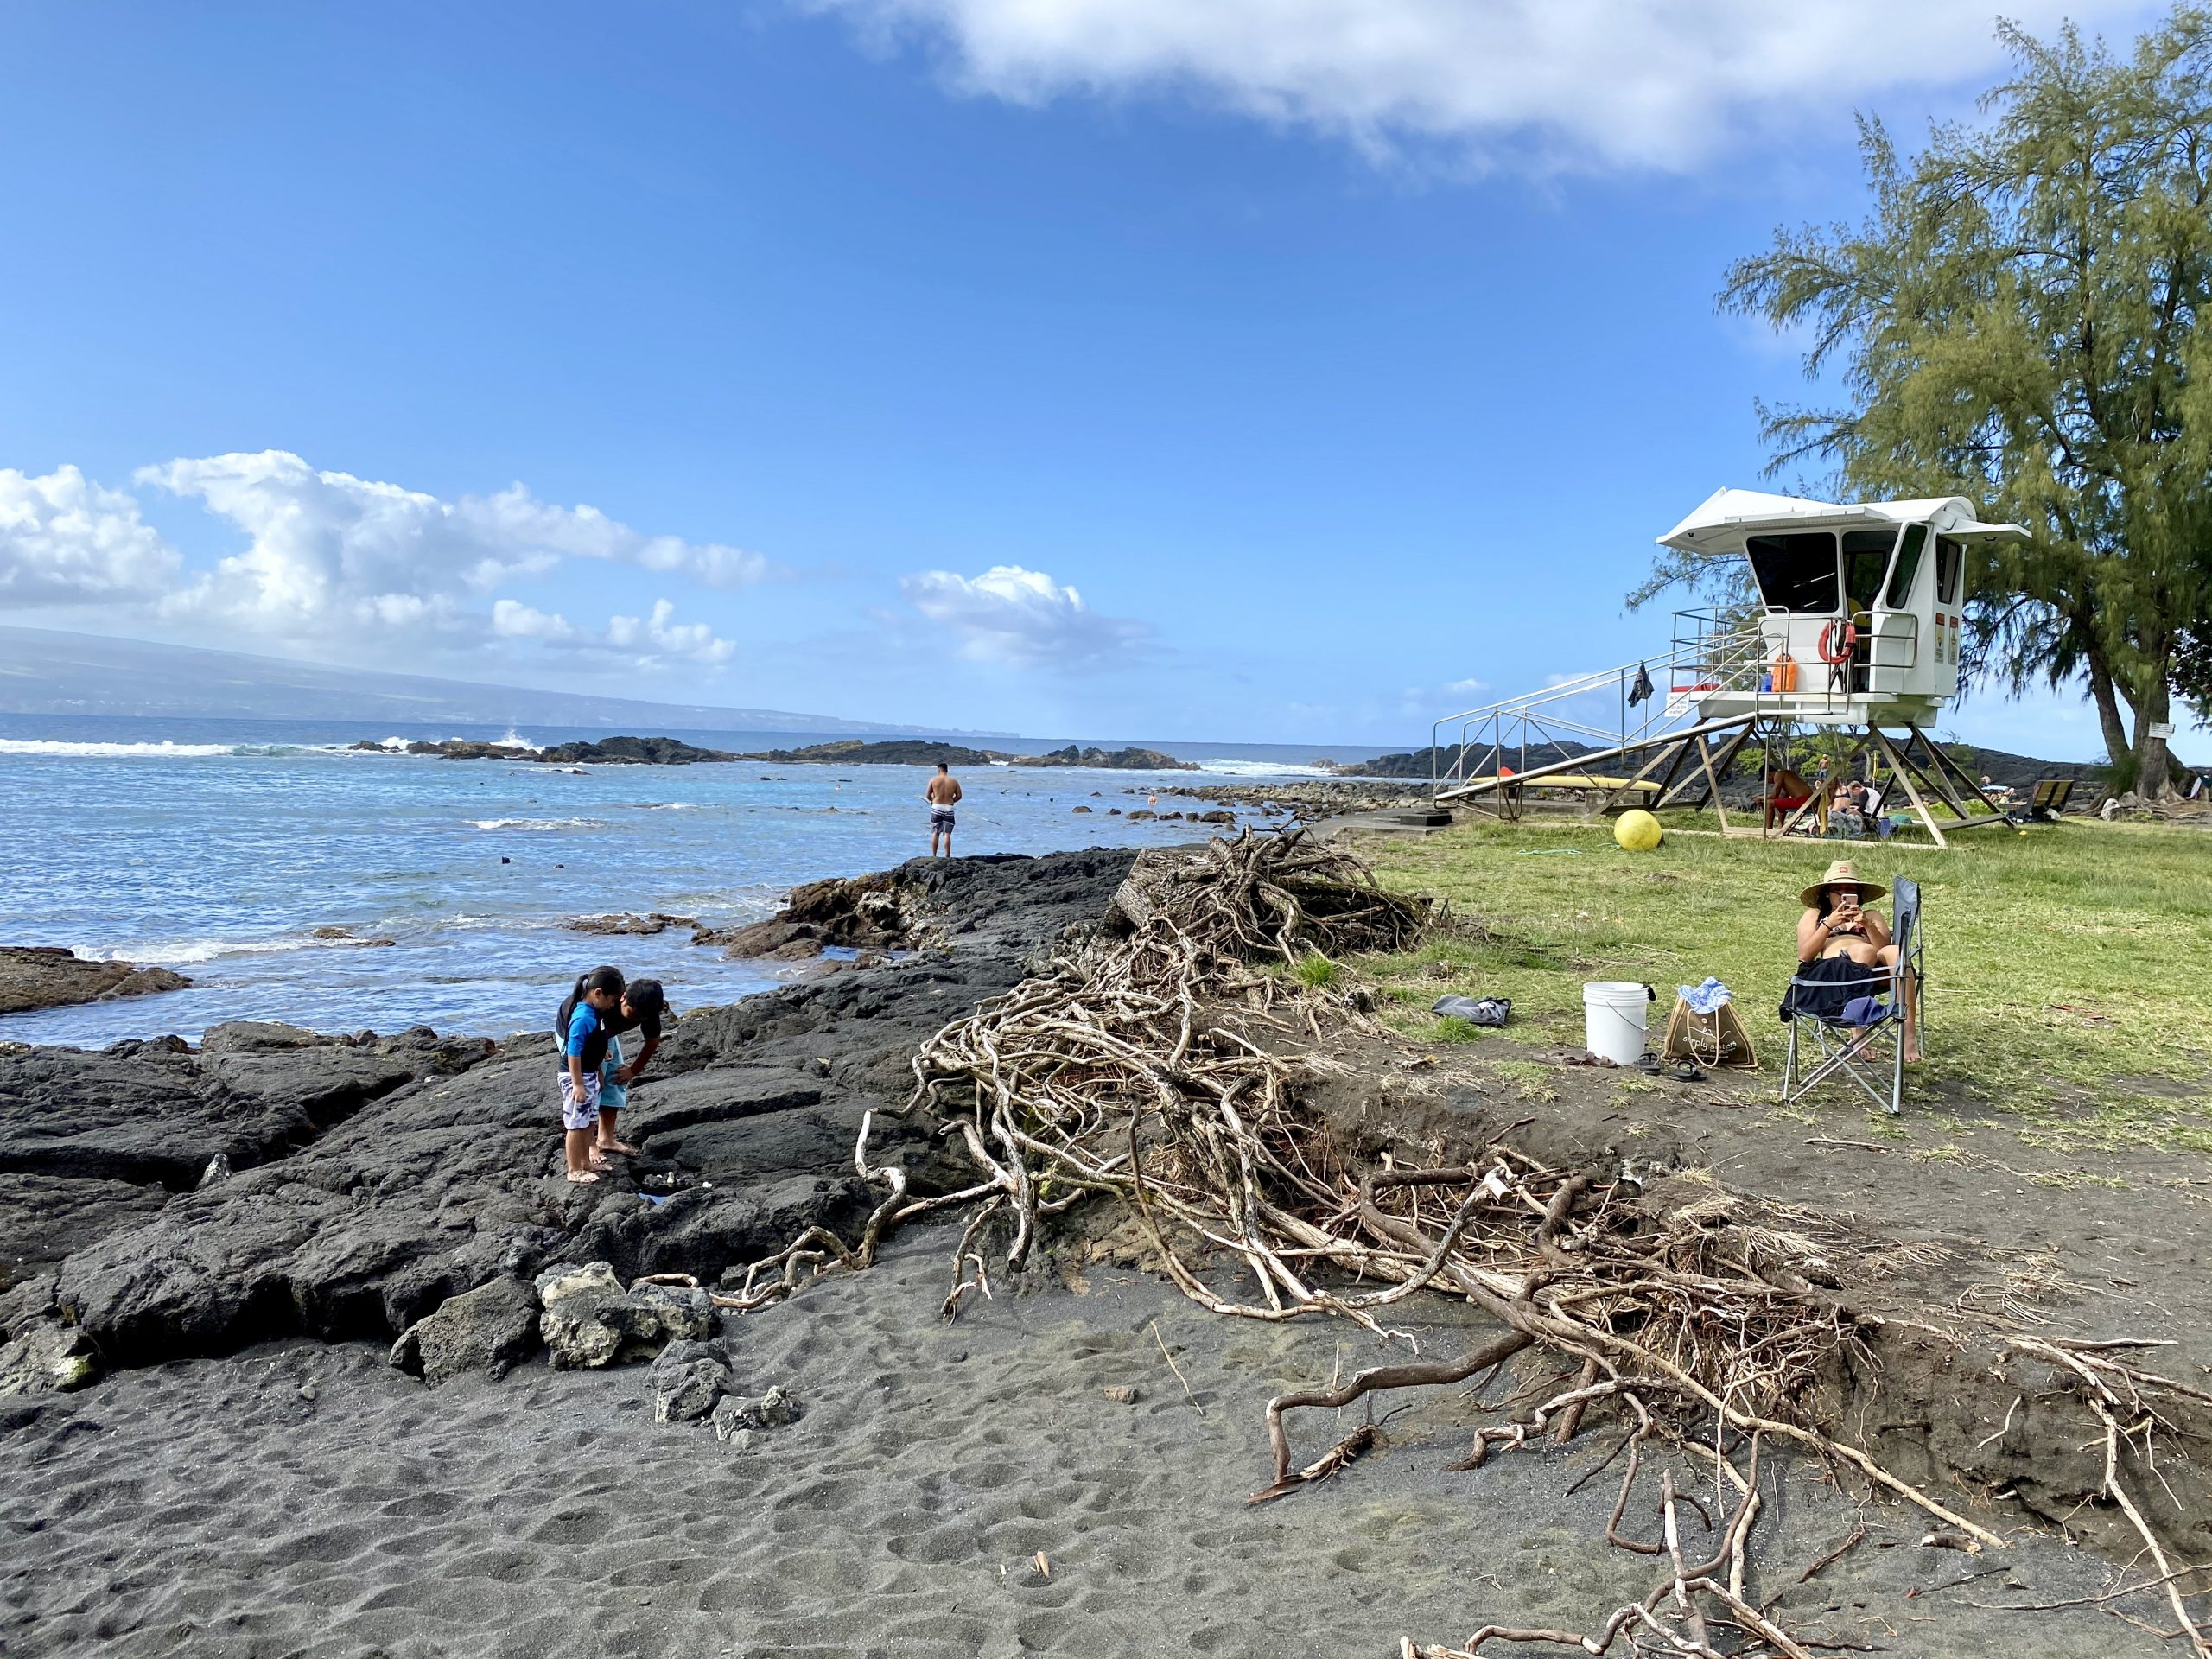 Richardson Beach Park in Hilo, Hawaii with sand, ocean and lifeguard station